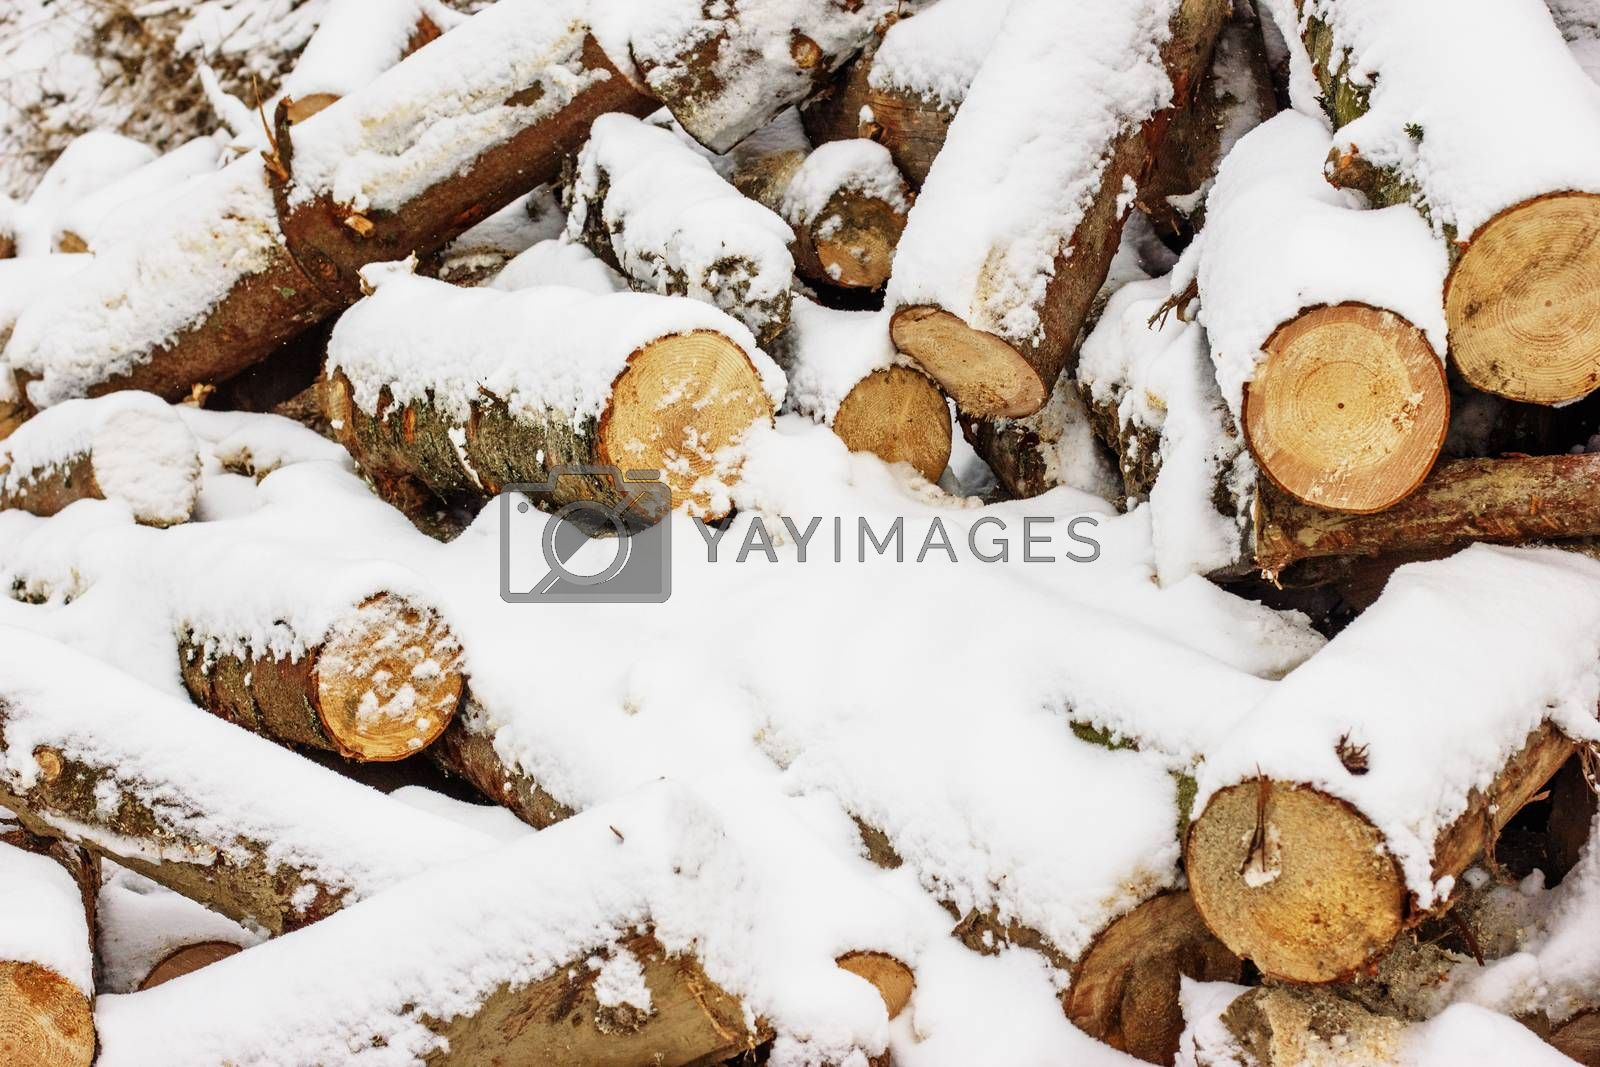 The stack of the snowy firewood on old wooden background. Wood pieces, tree chops stored outdoors for fireplace or mantel, texture or background.